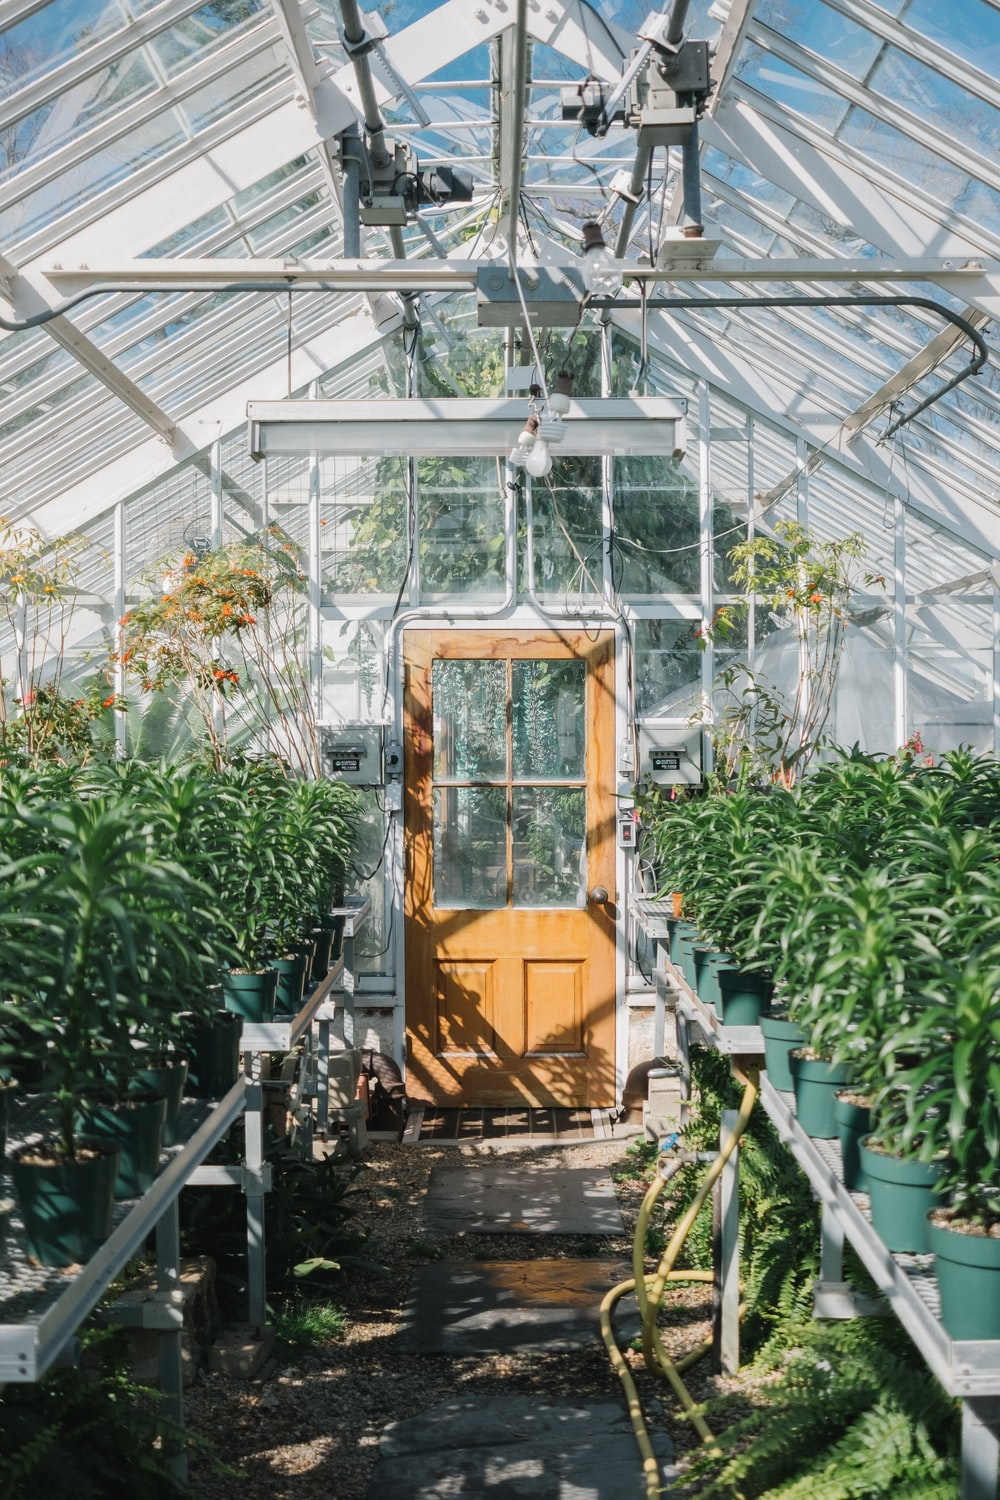 brown wooden seat in greenhouse